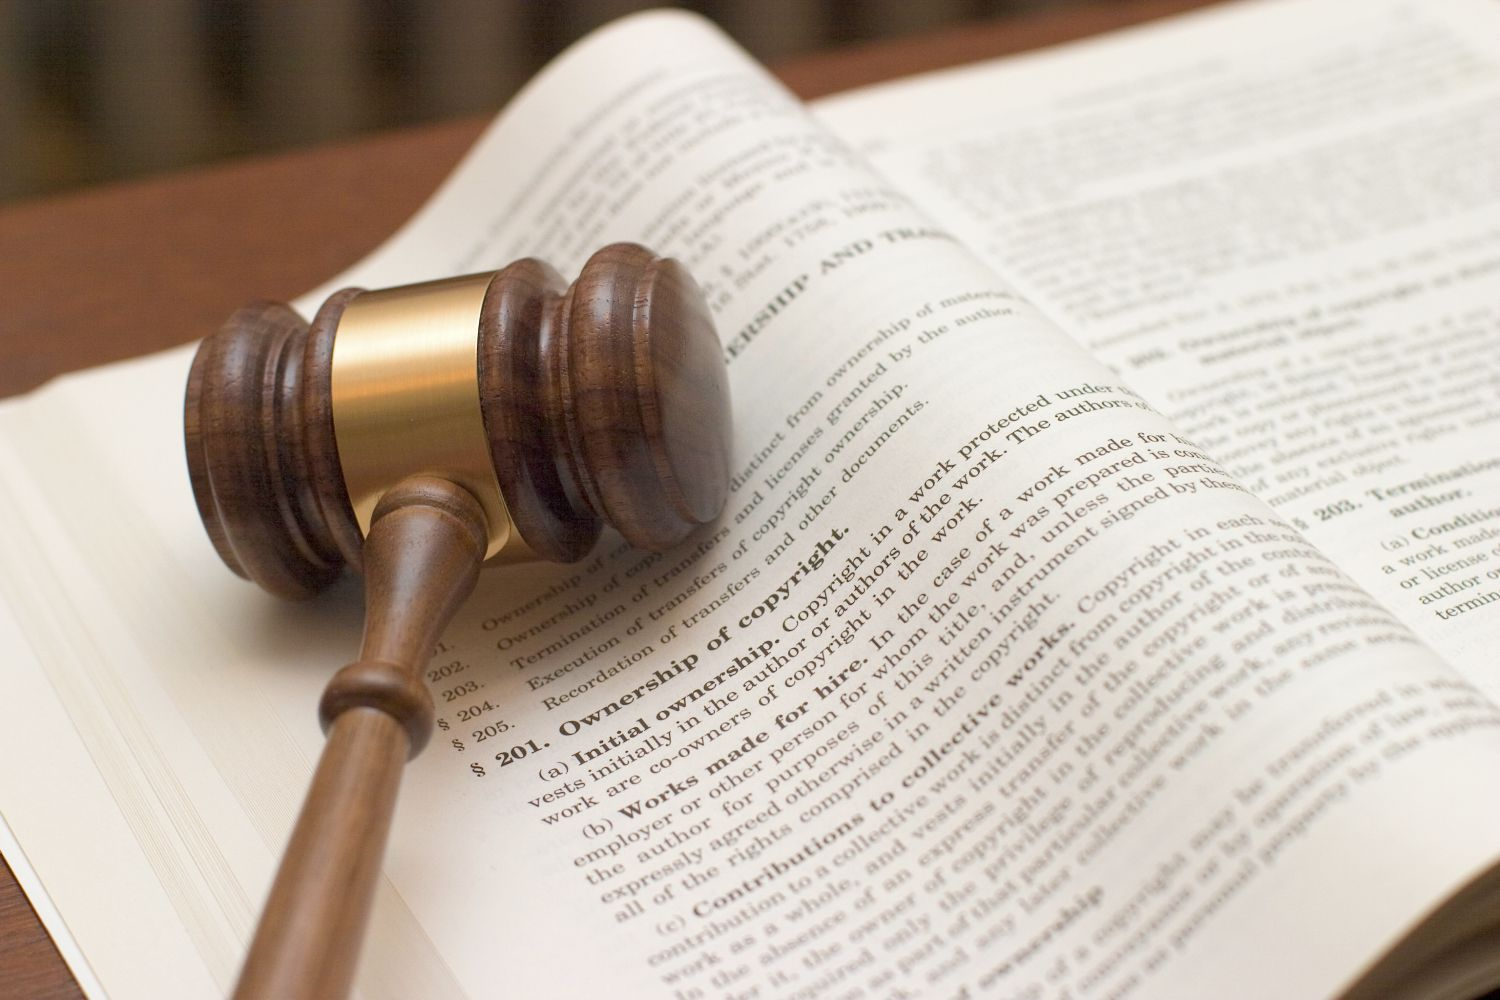 A gavel and book for legal matters Statesboro, GA